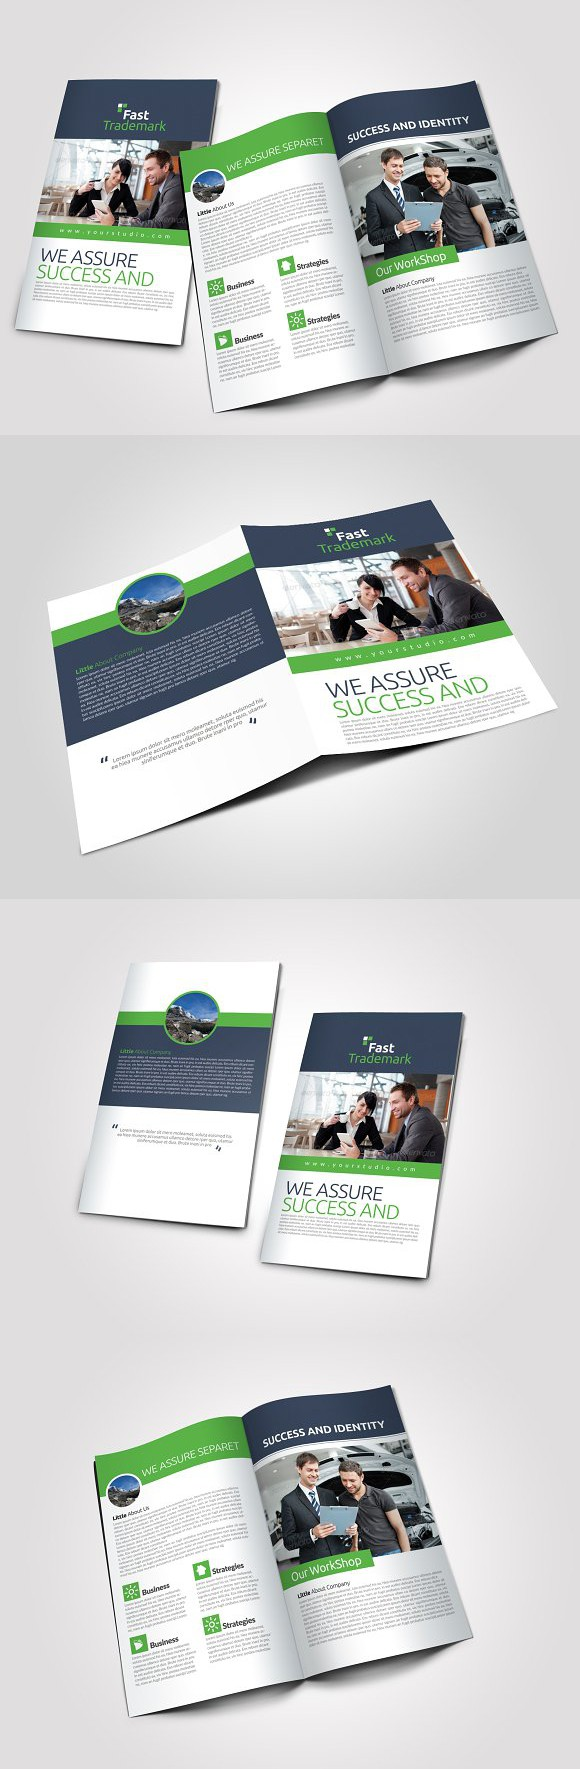 4 pages business bi fold brochure brochures card templates and 4 pages business bi fold brochure creative business card templates flashek